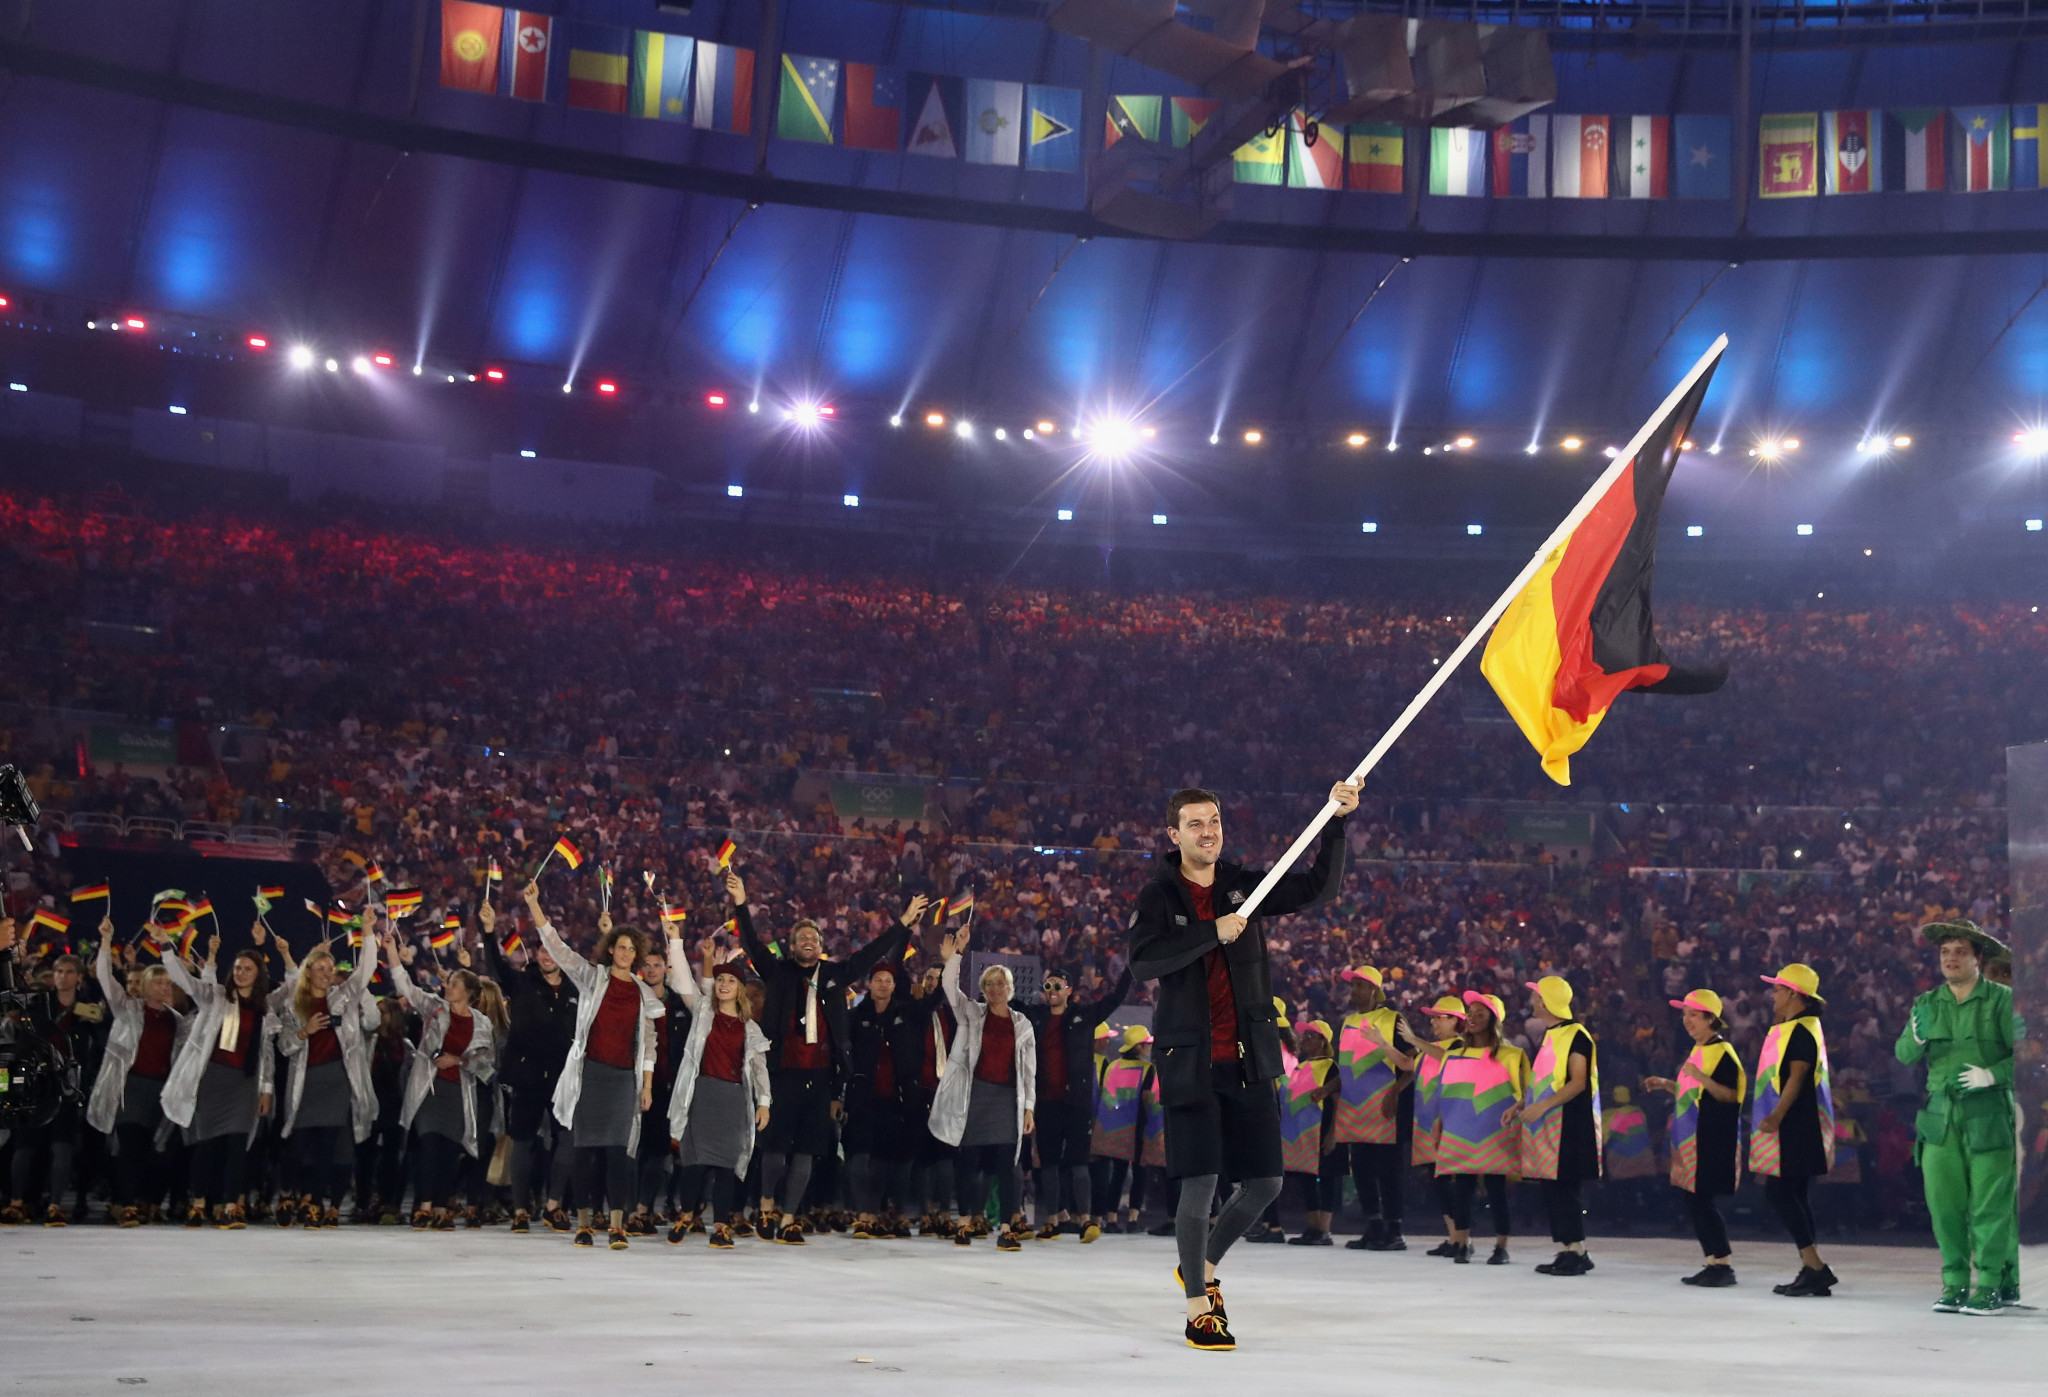 Germany's preparations for next year's Olympic and Paralympic Games in Tokyo were discussed at the General Assembly ©Getty Images